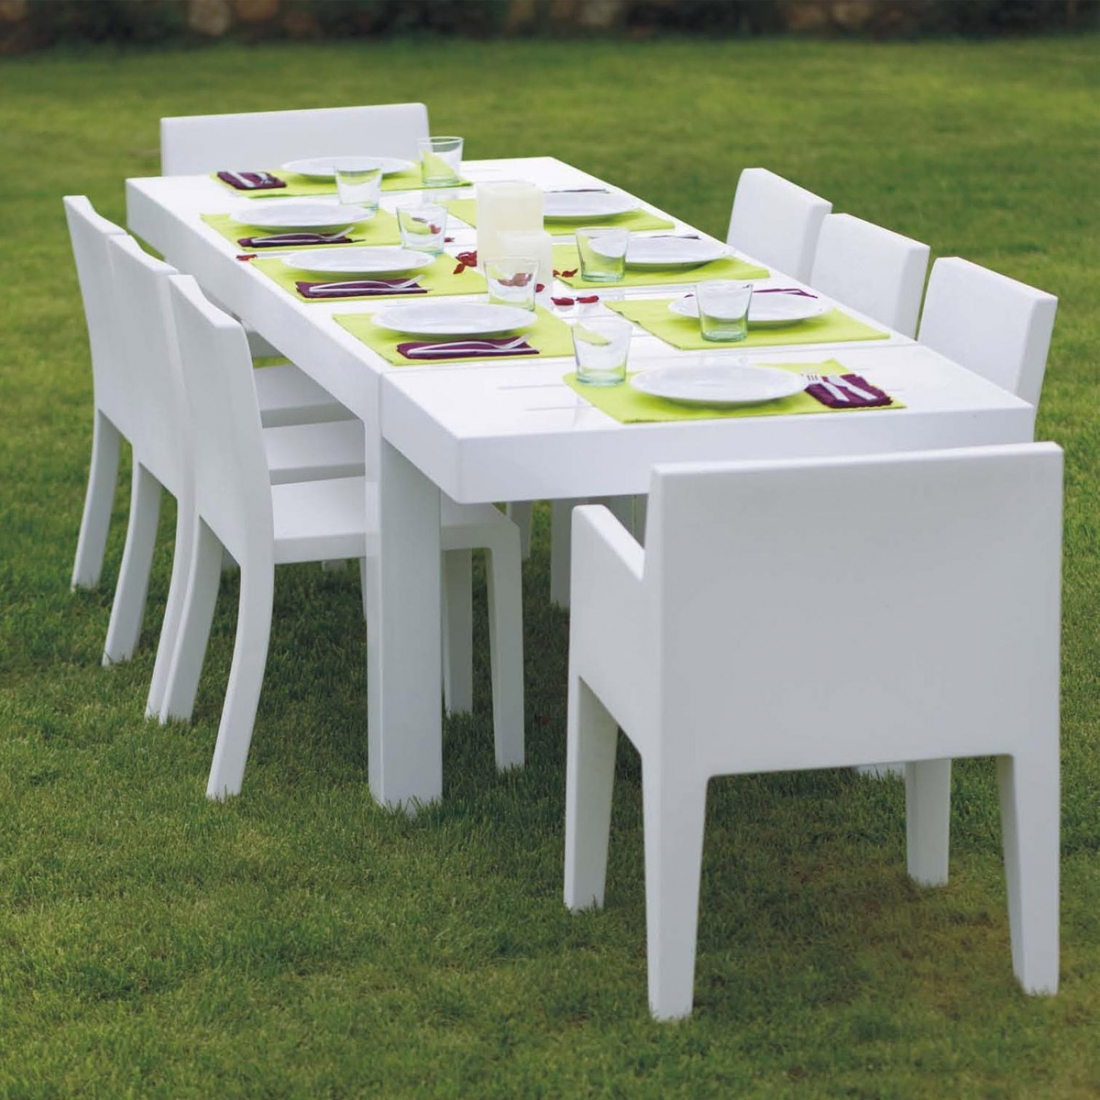 table de jardin design 12 personnes jut par vondom. Black Bedroom Furniture Sets. Home Design Ideas